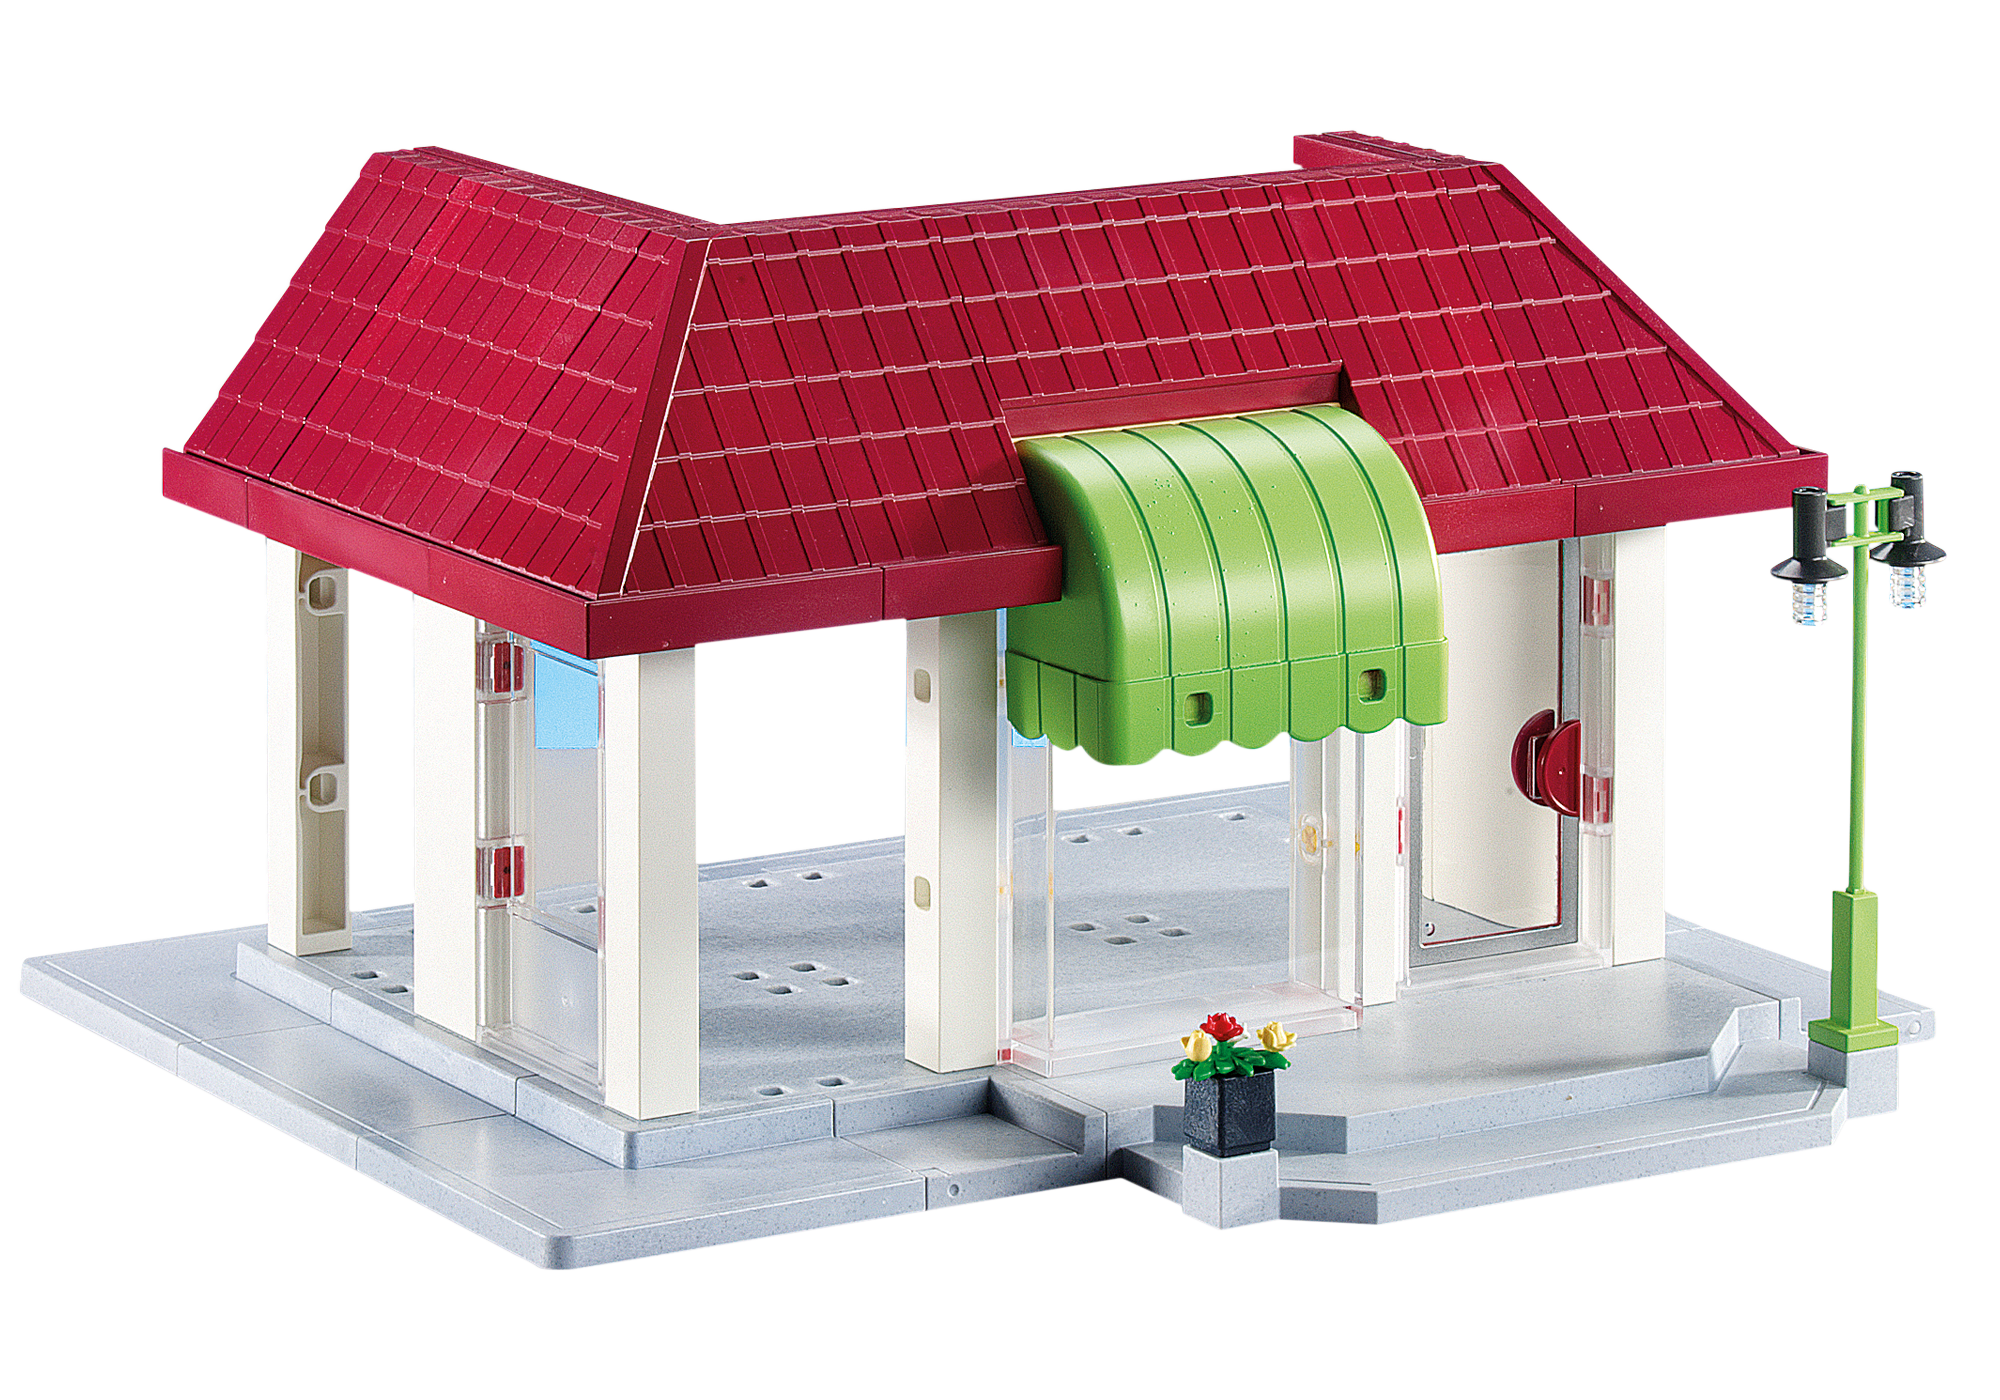 http://media.playmobil.com/i/playmobil/6220_product_detail/Neues Ladengebäude